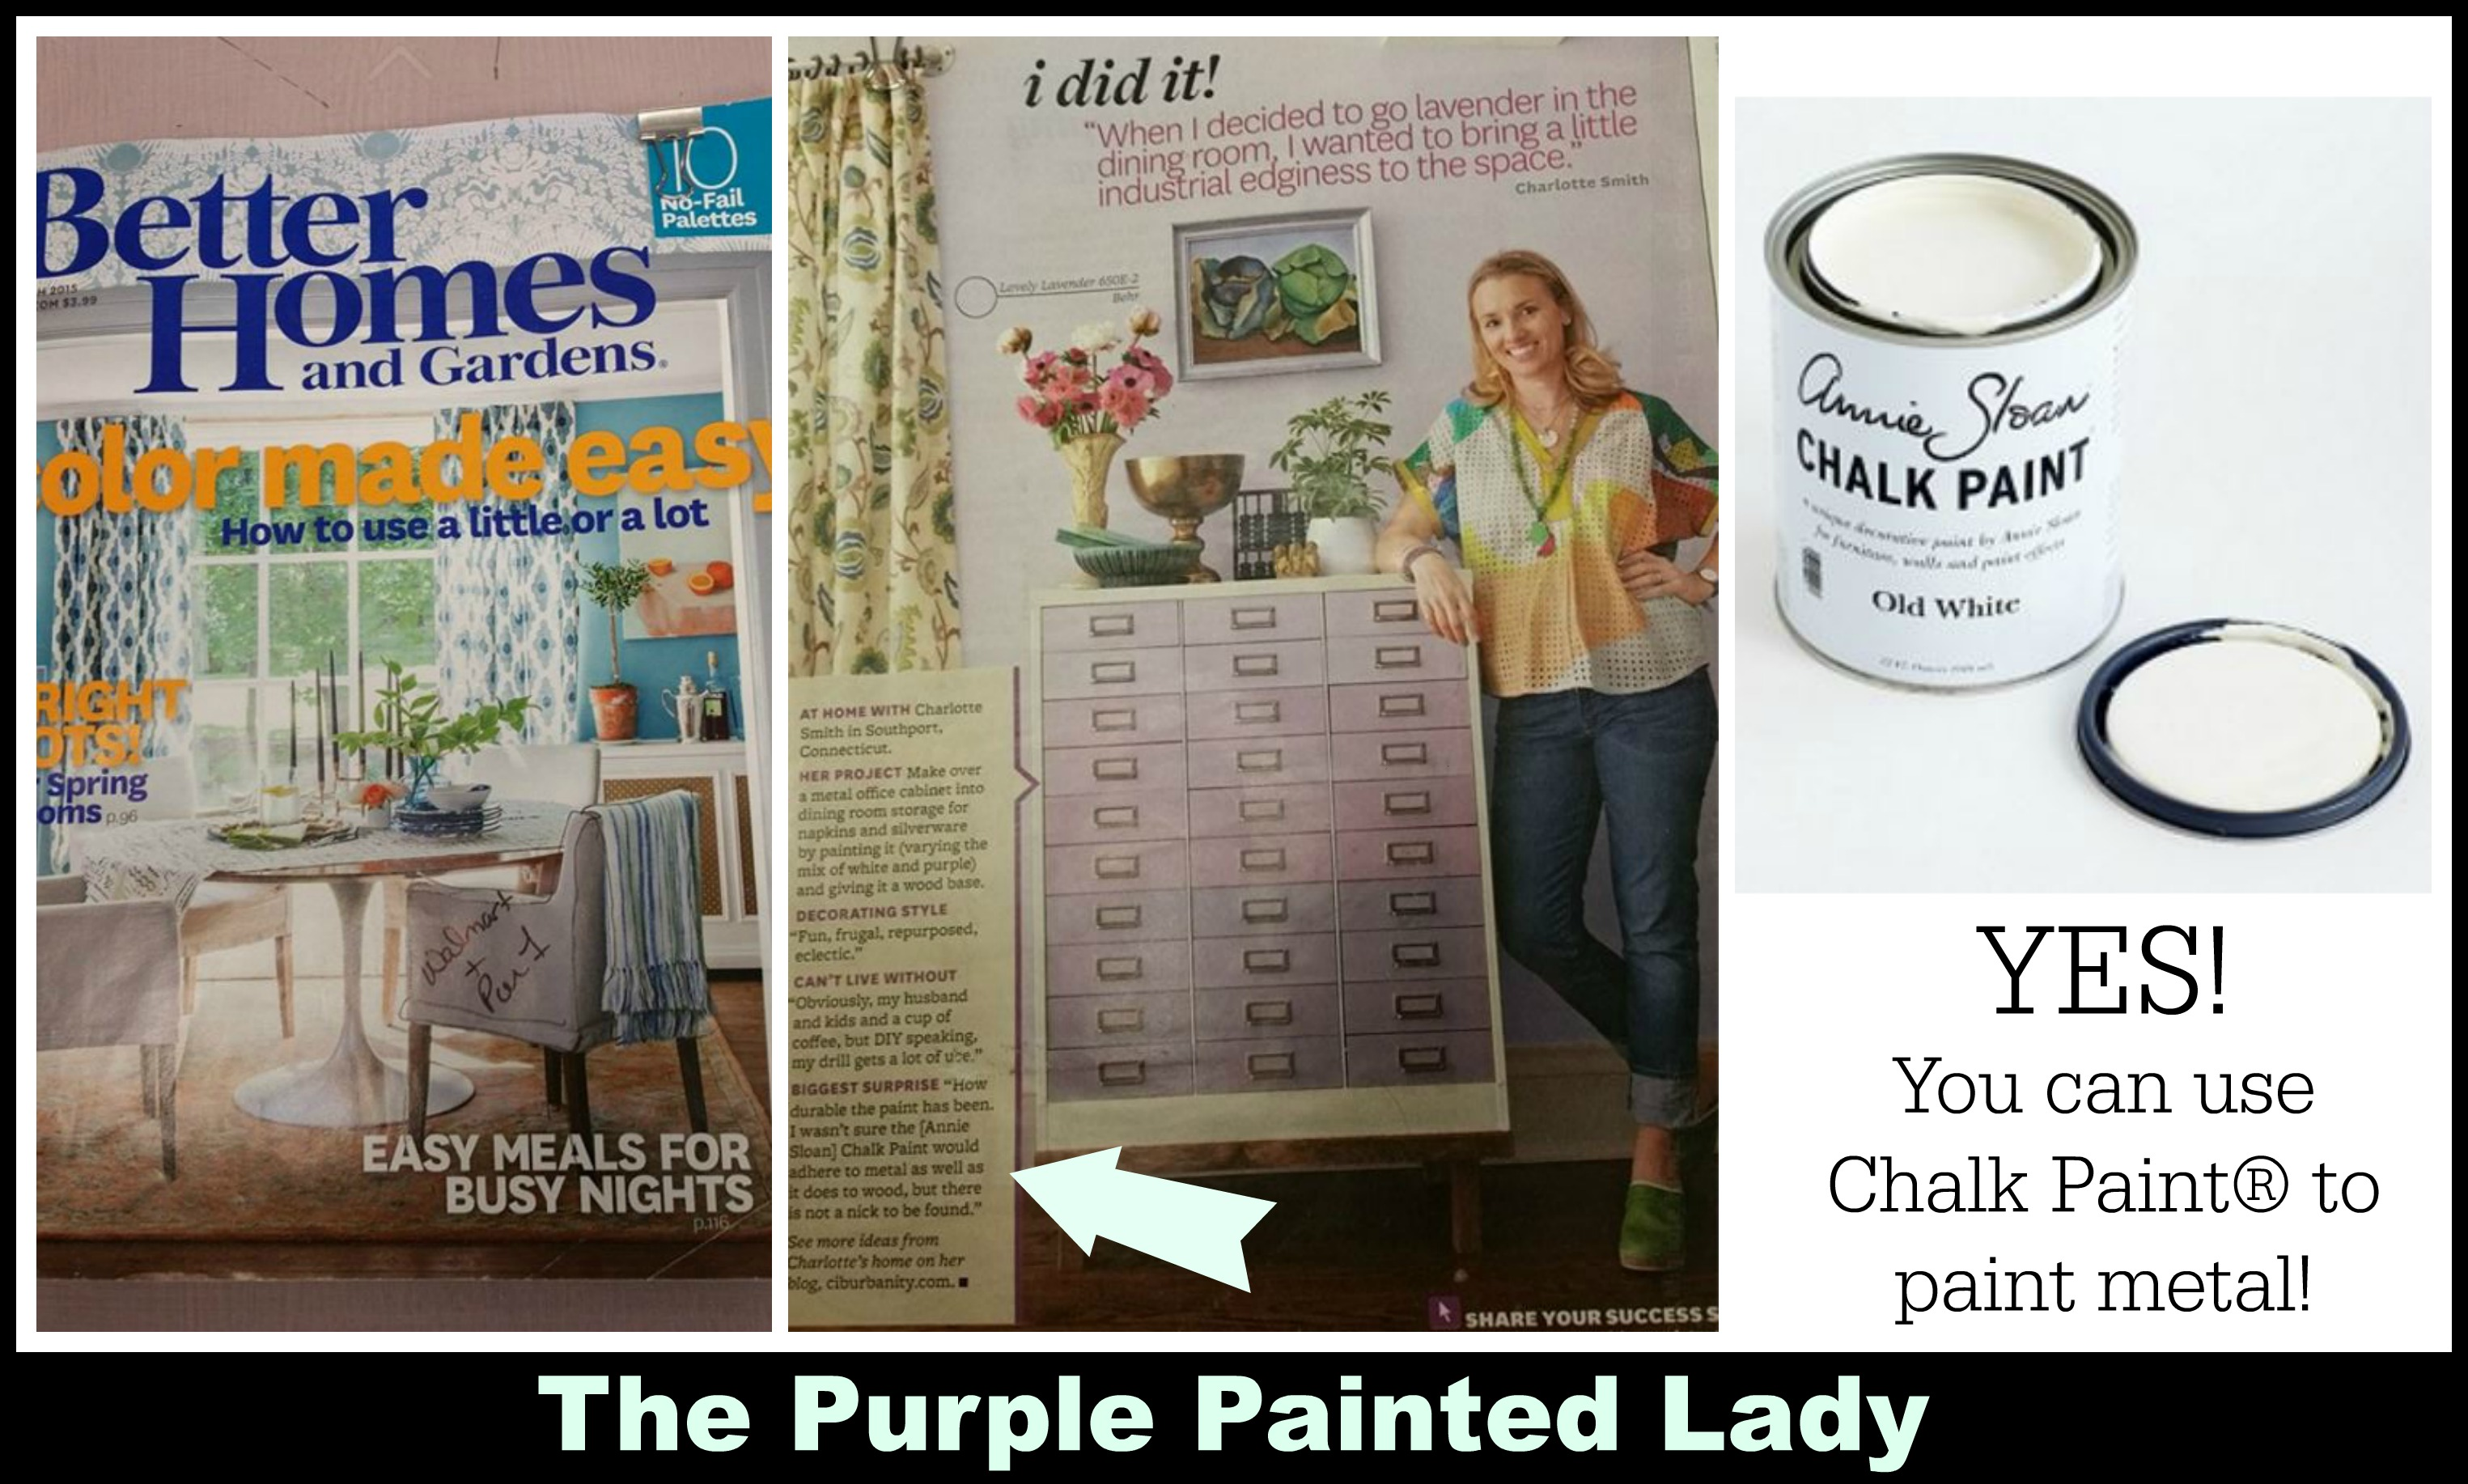 The Purple Painted Lady Painting Metal Chalk Paint Better Homes and Gardens